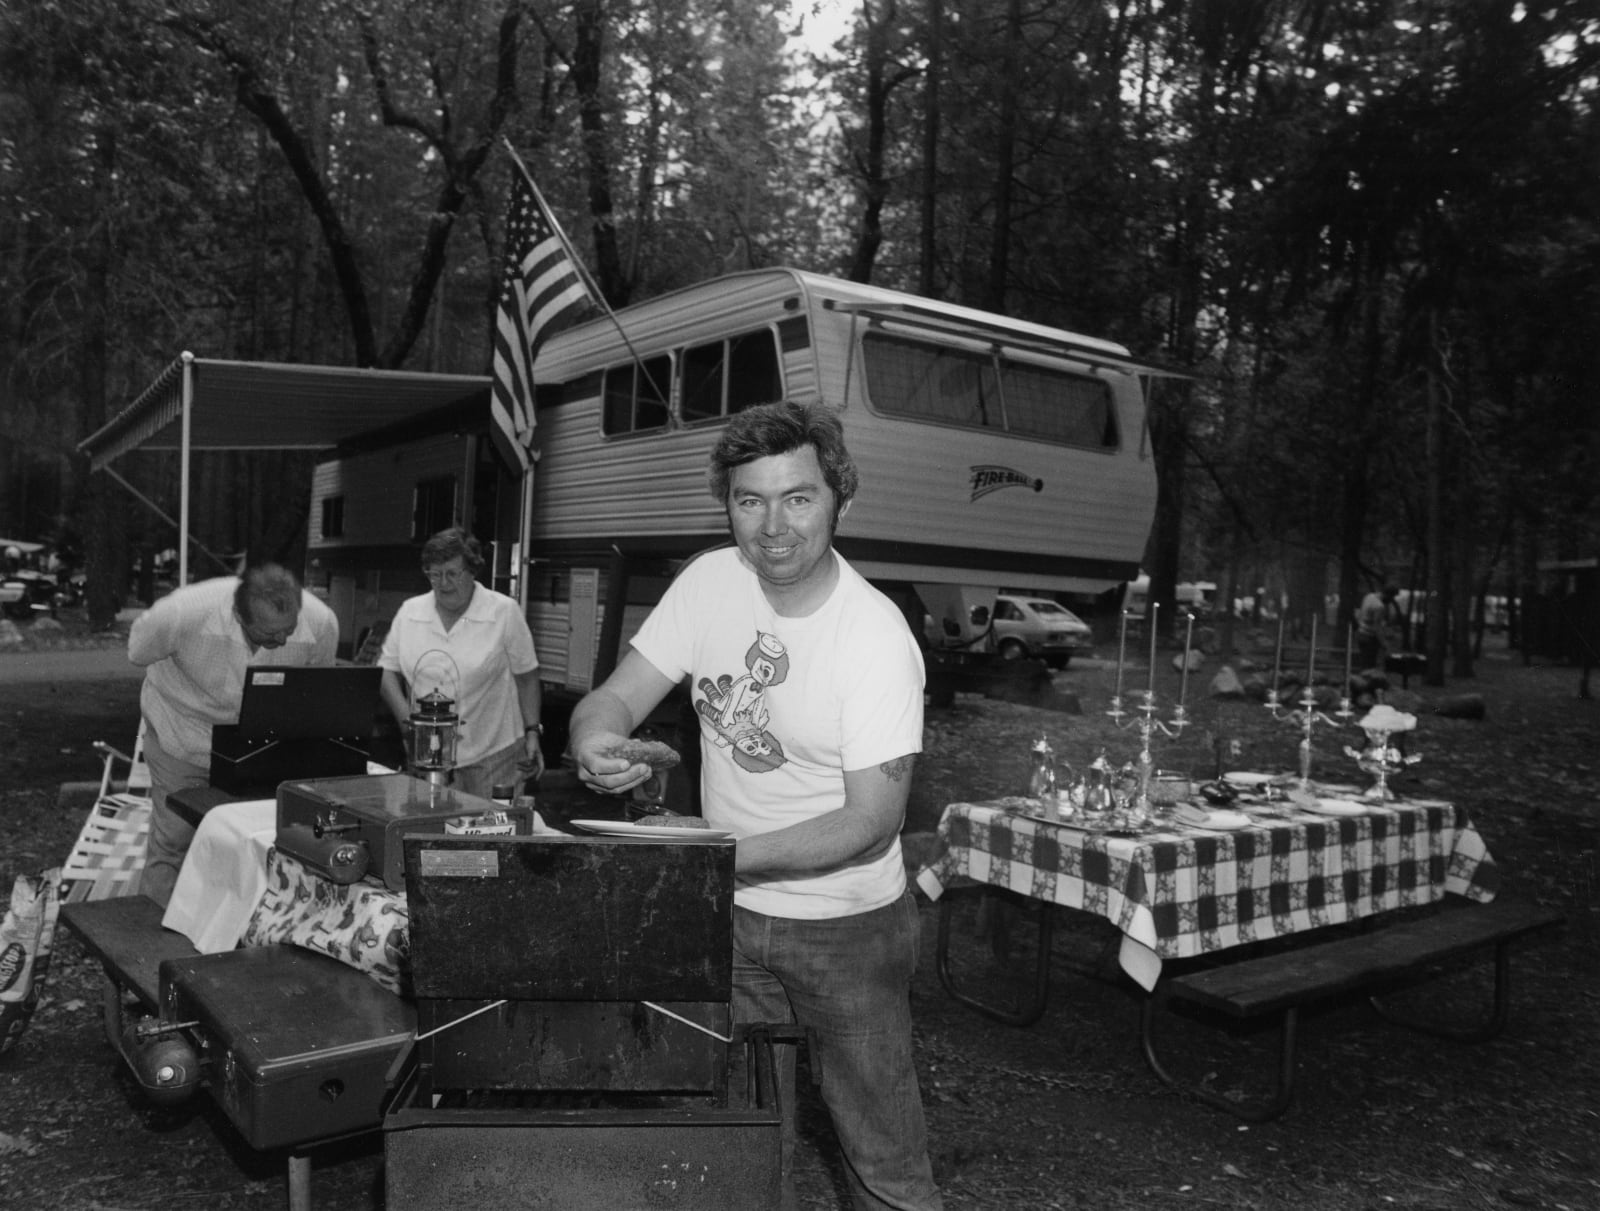 Bill Owens - Every summer we go all out on our camp in Yosemite. I do the barbequing., 1972